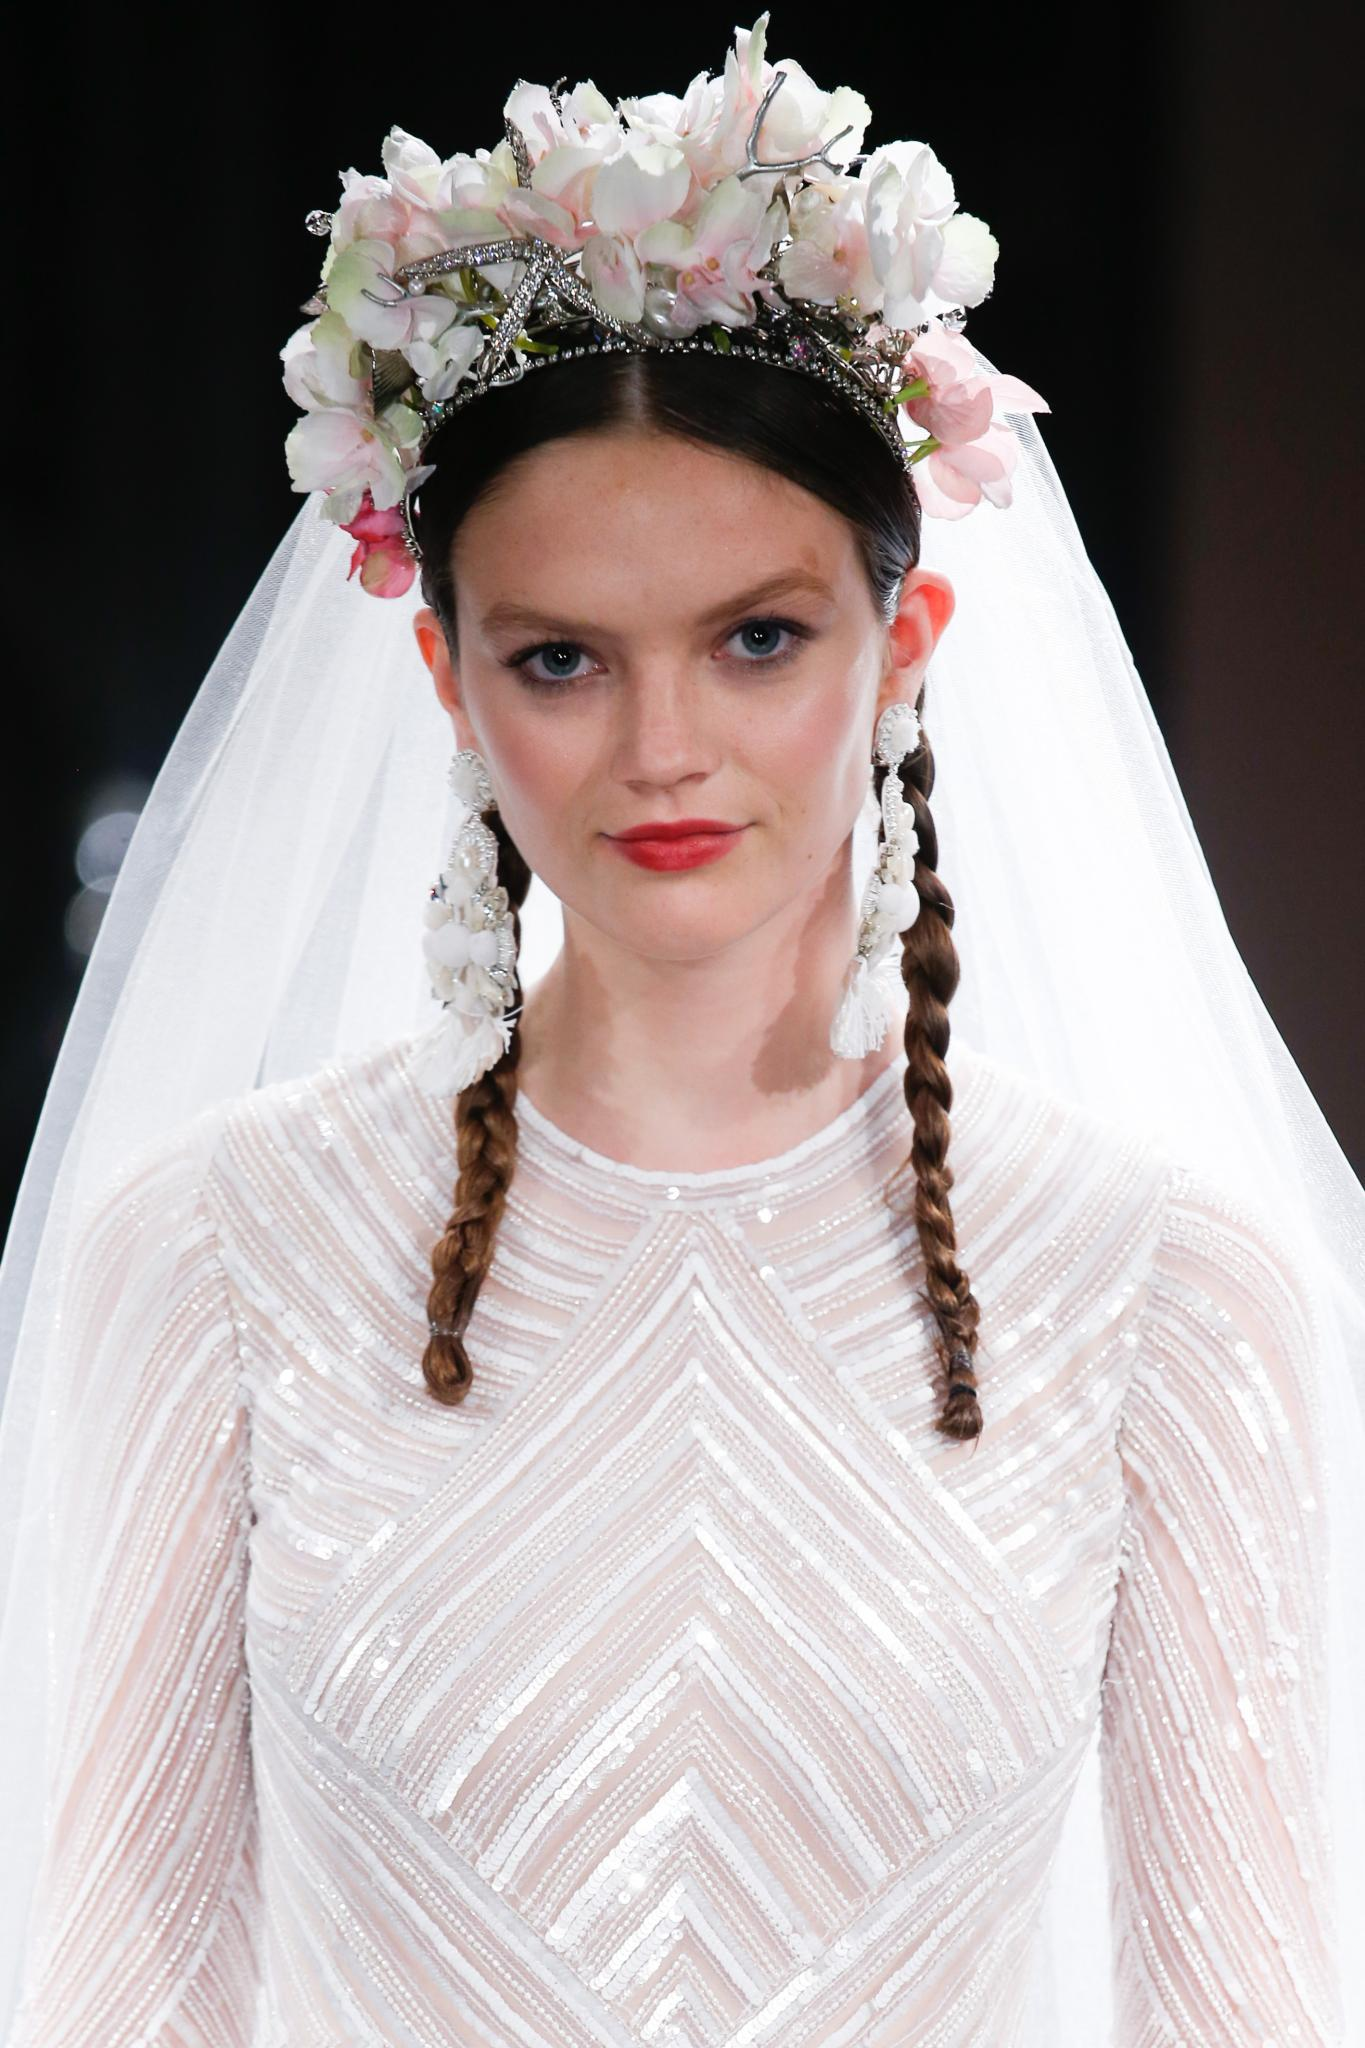 runway model with dark brown hair with braided pigtails under large flower crown and veil